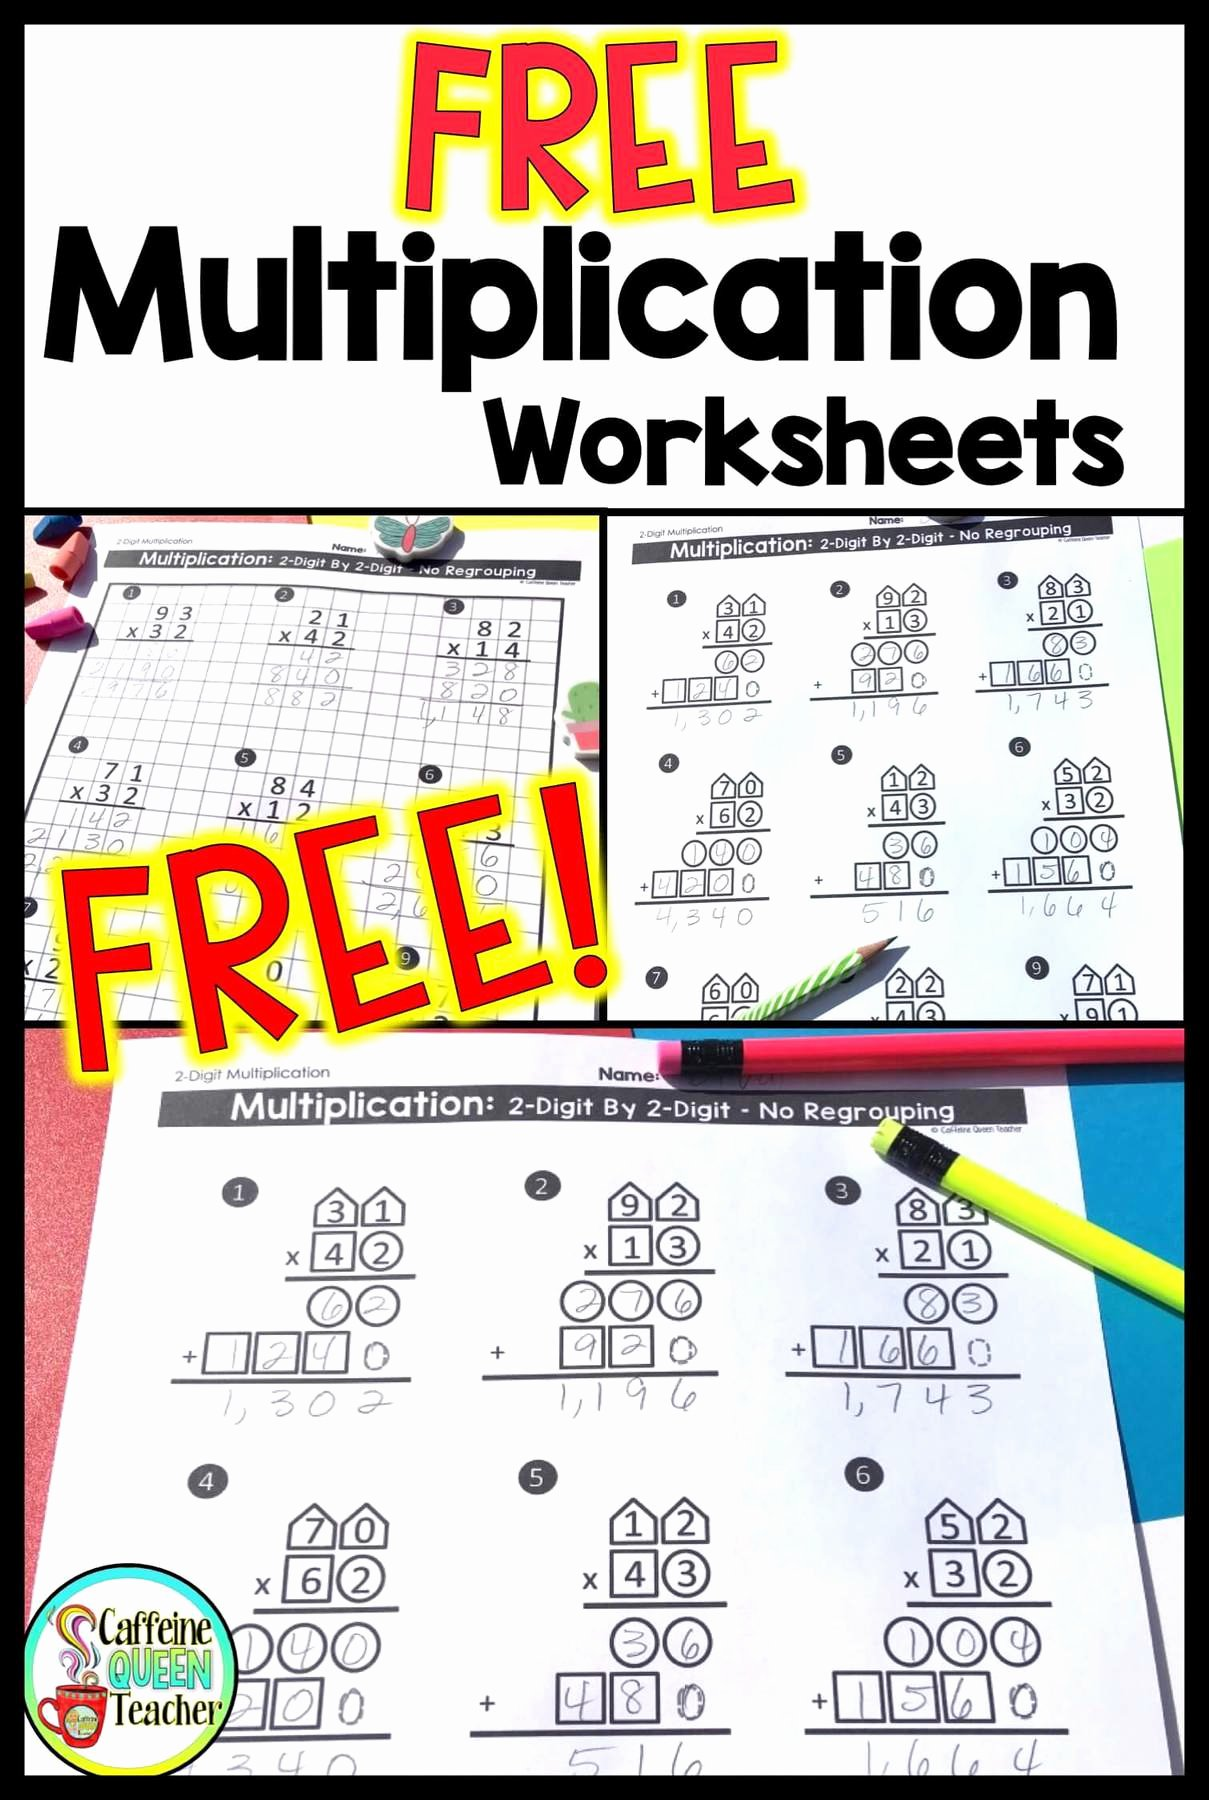 2 Digits Multiplication Worksheets Lovely 2 Digit Multiplication Worksheets Differentiated Caffeine